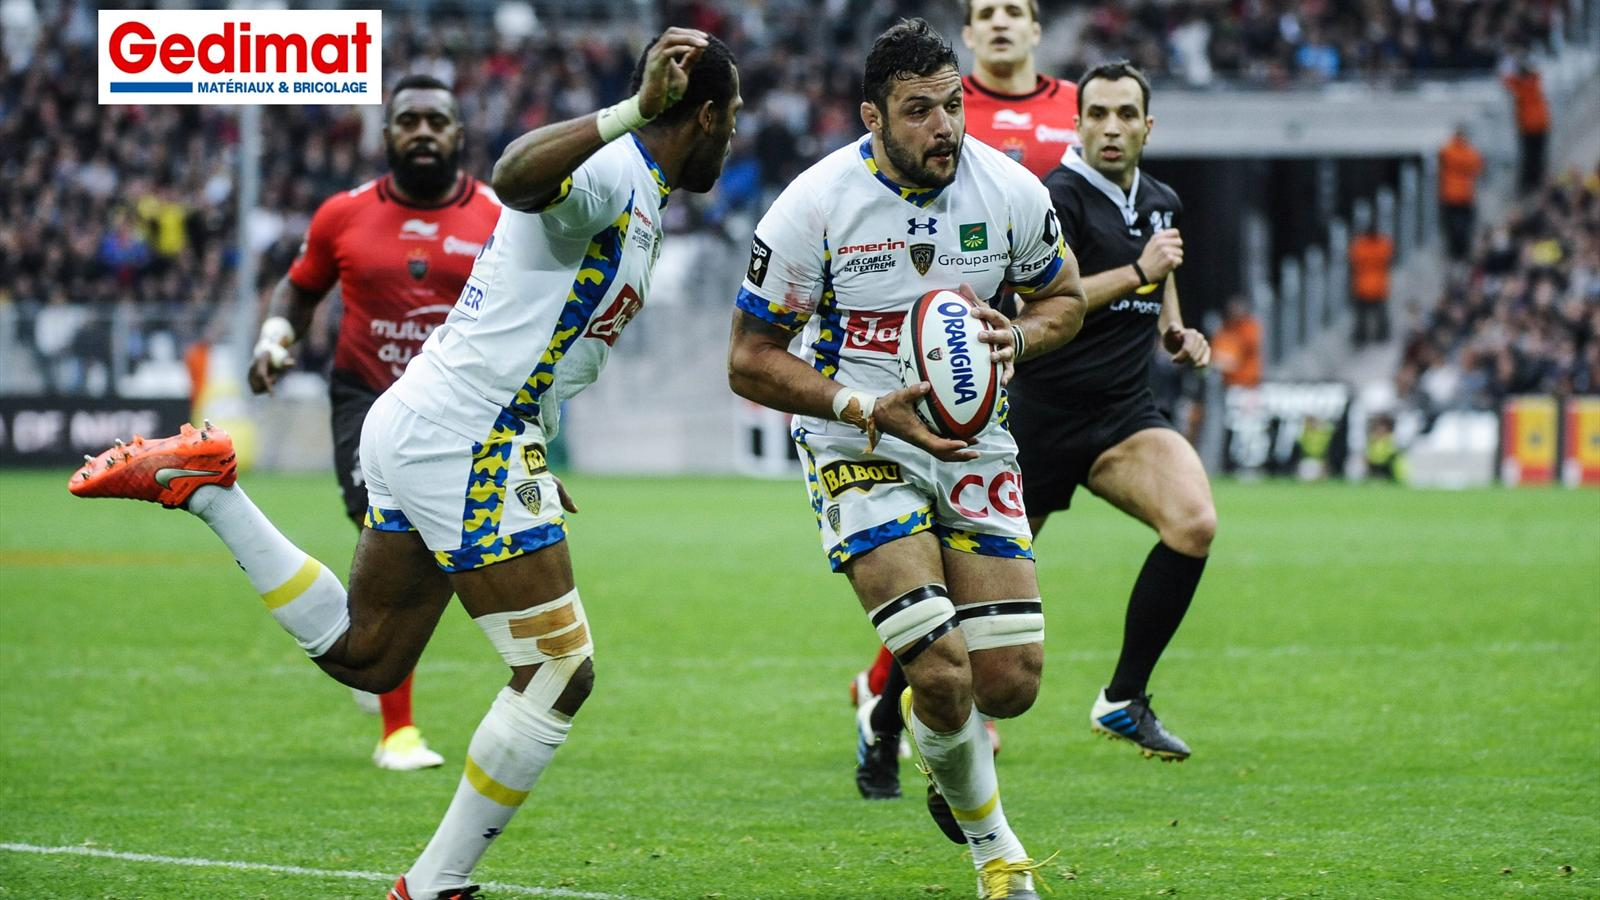 Essai g dimat damien chouly conclut l 39 action chirurgicale for Interieur sport rugby